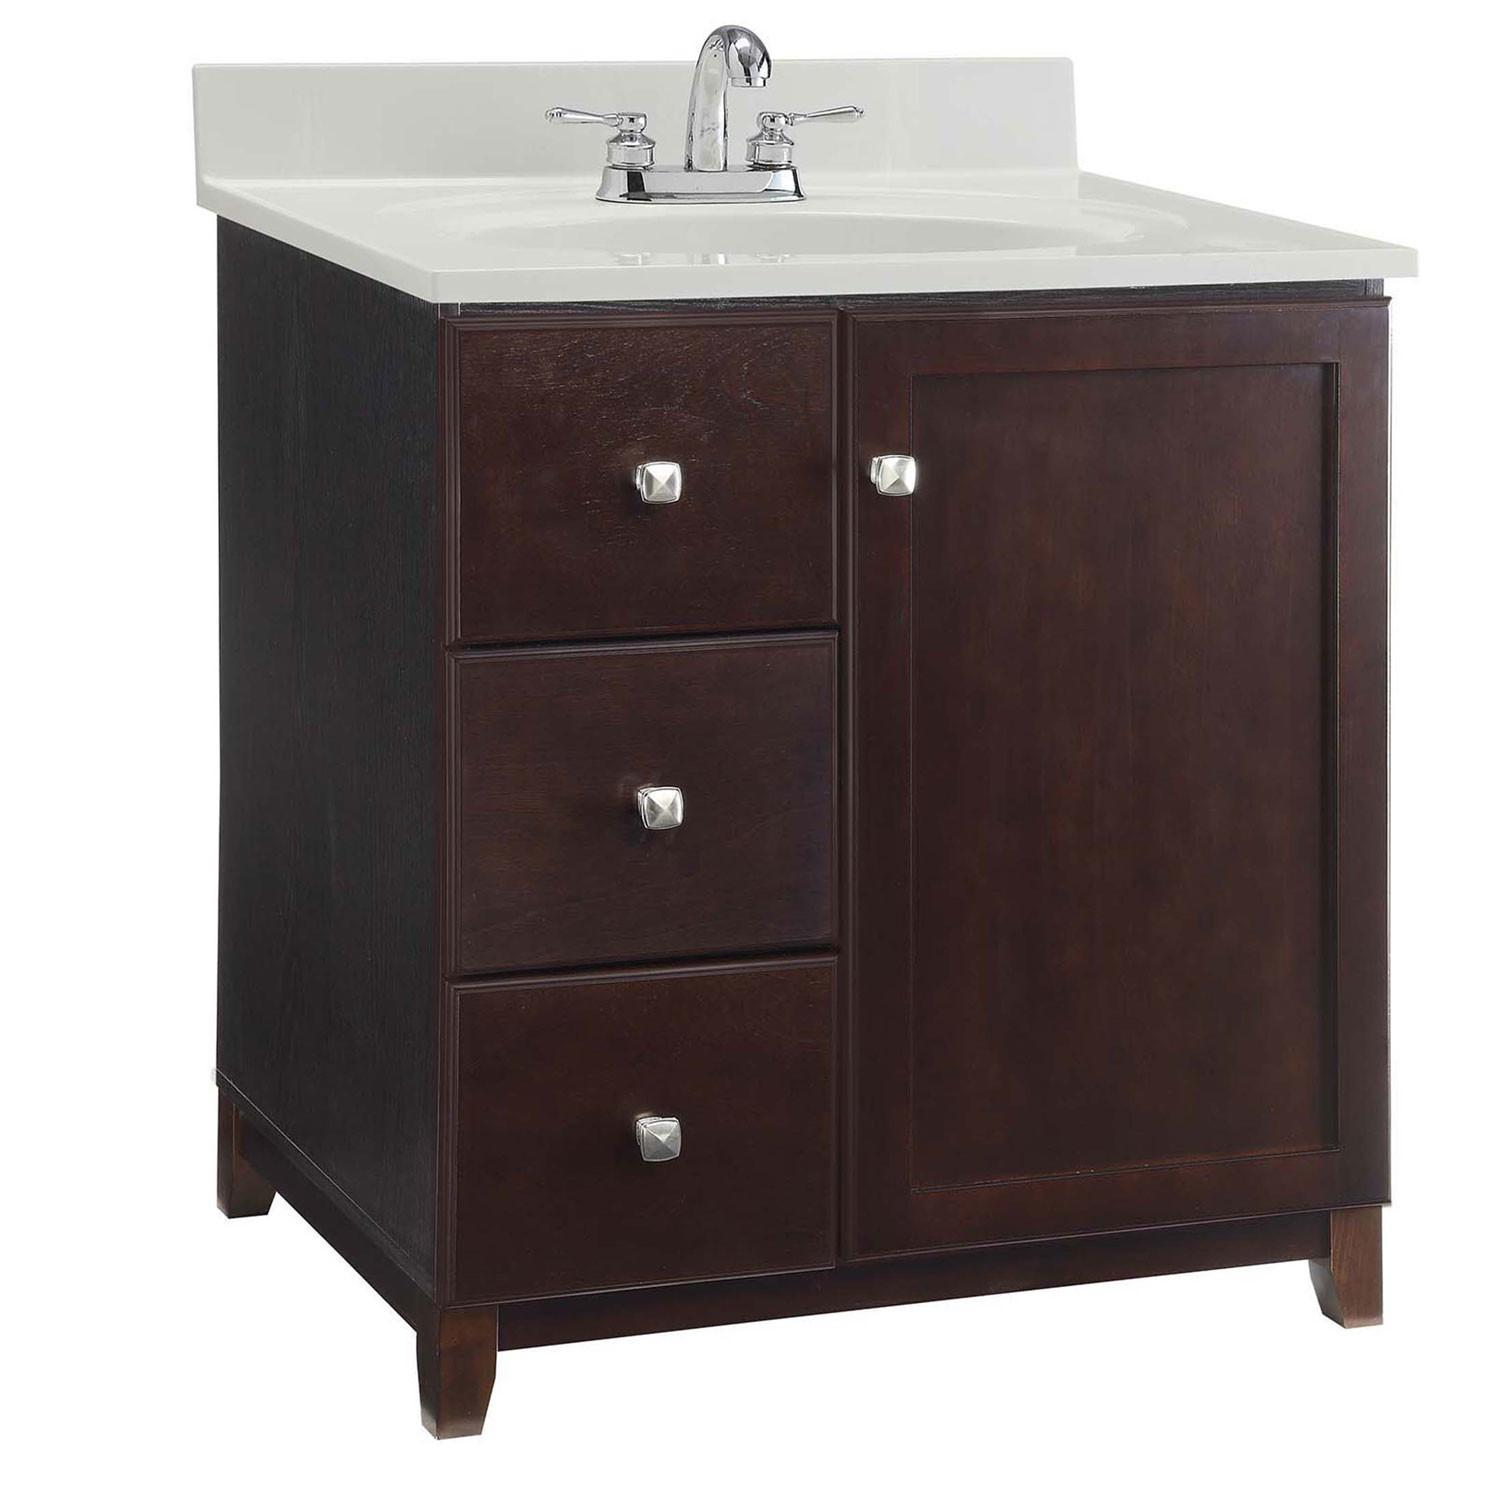 Furniture Style Vanity Cabinet Inches